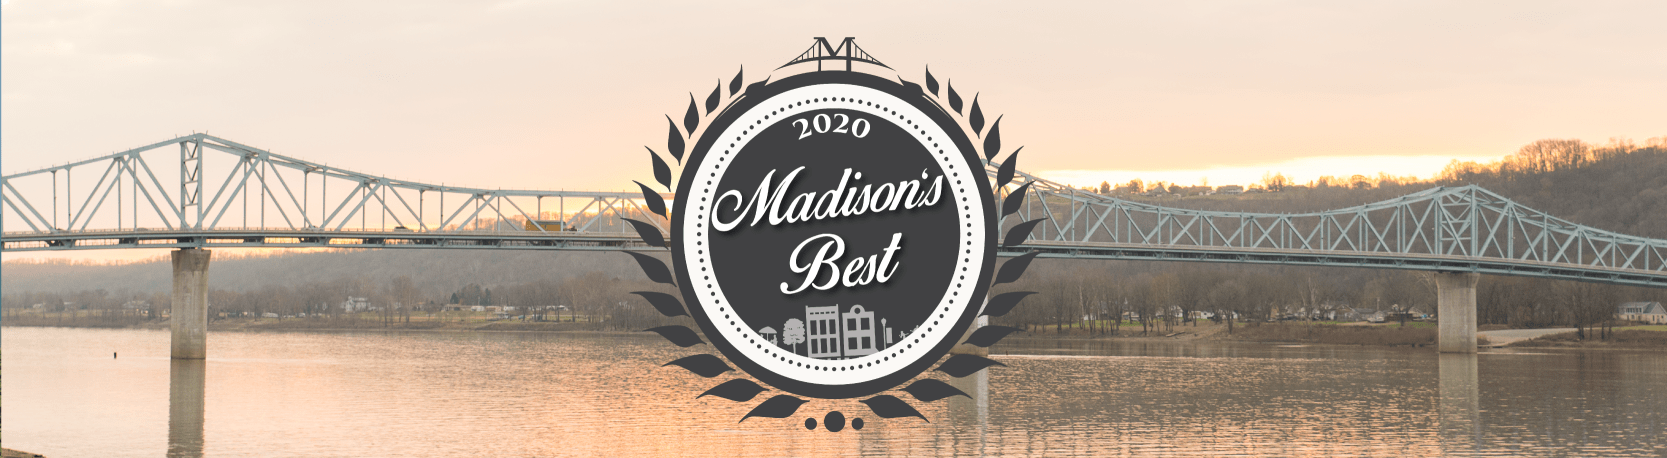 2020 madisons best business winners banner